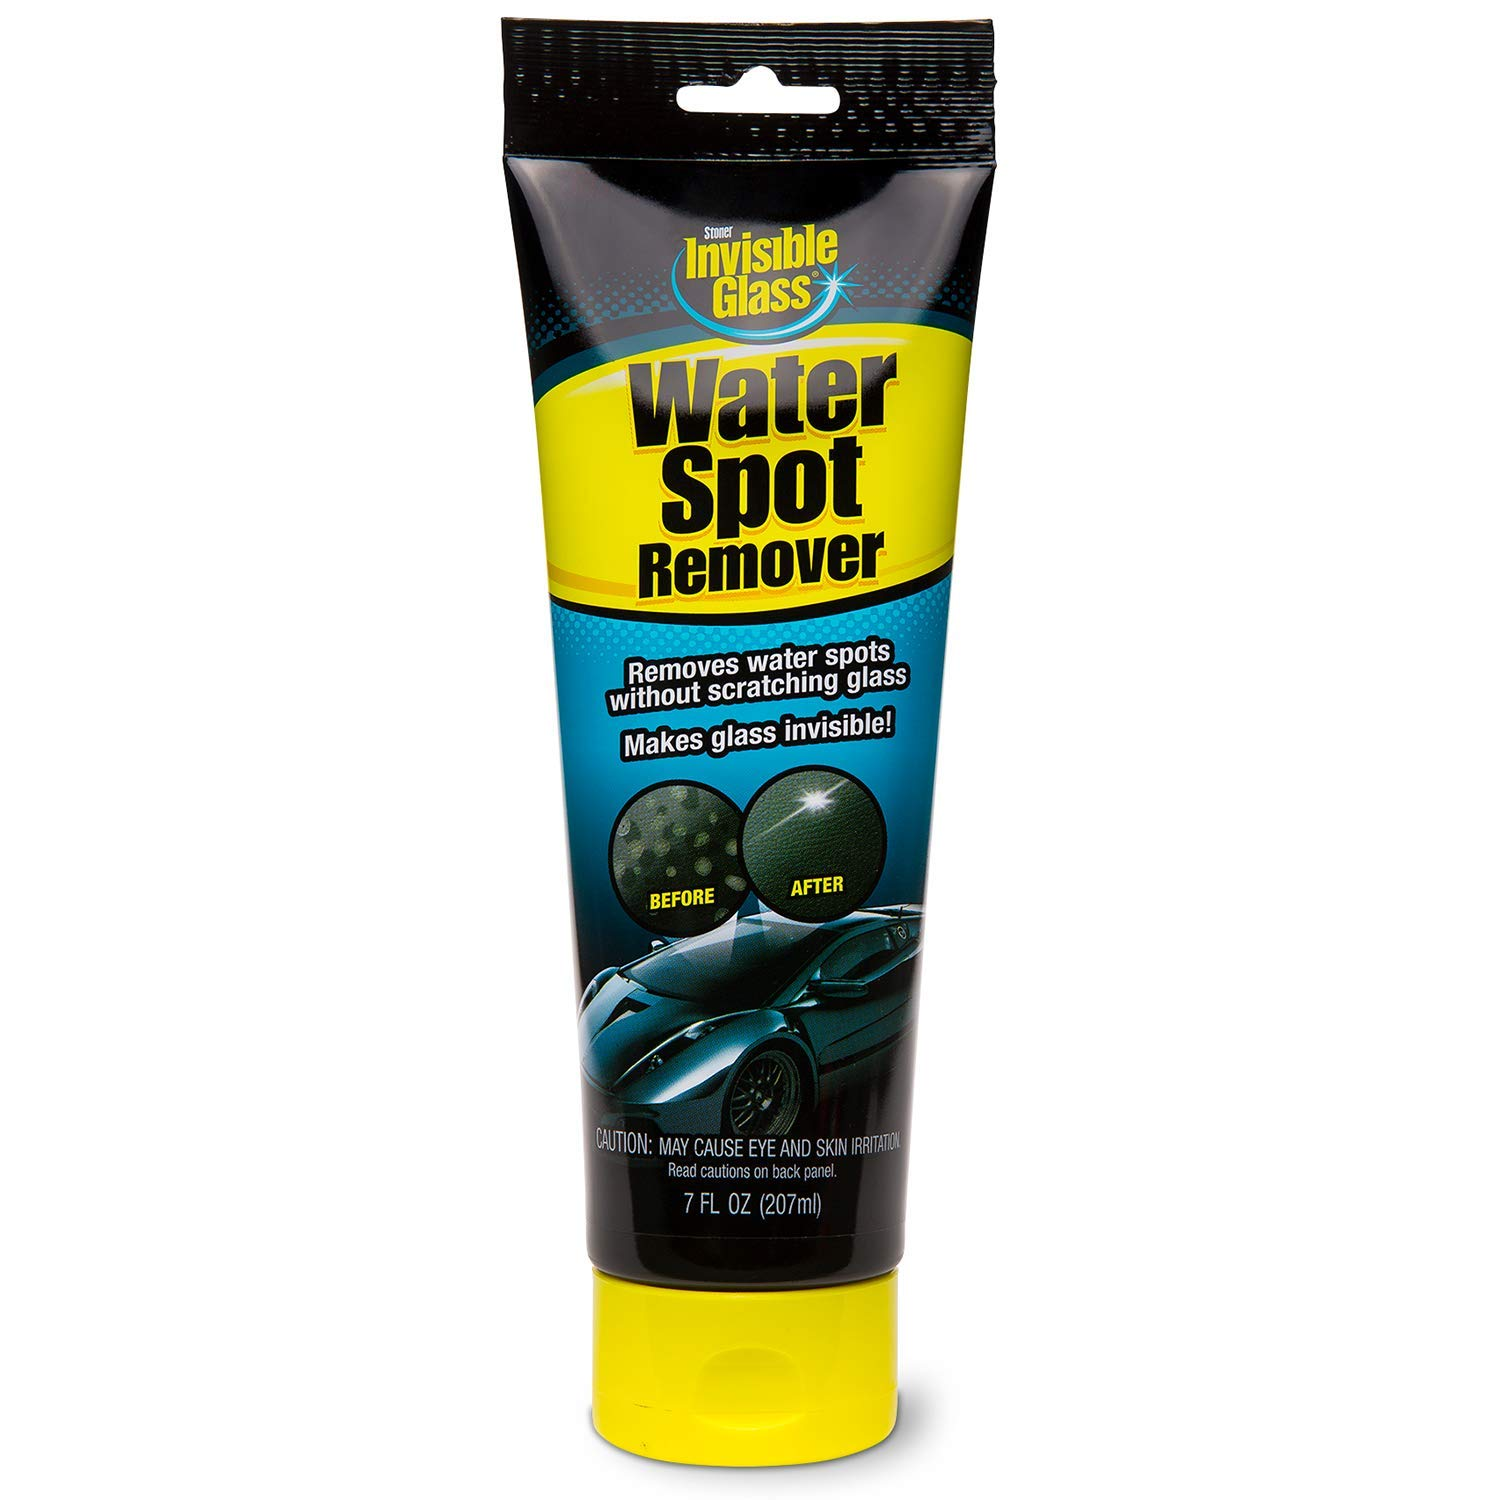 Invisible Glass 95310 Water Spot Remover - Water Spot Cleaner for Windshields, Windows, Shower Doors, Chrome, Boats and More, Easily Removes Hard Water Stains